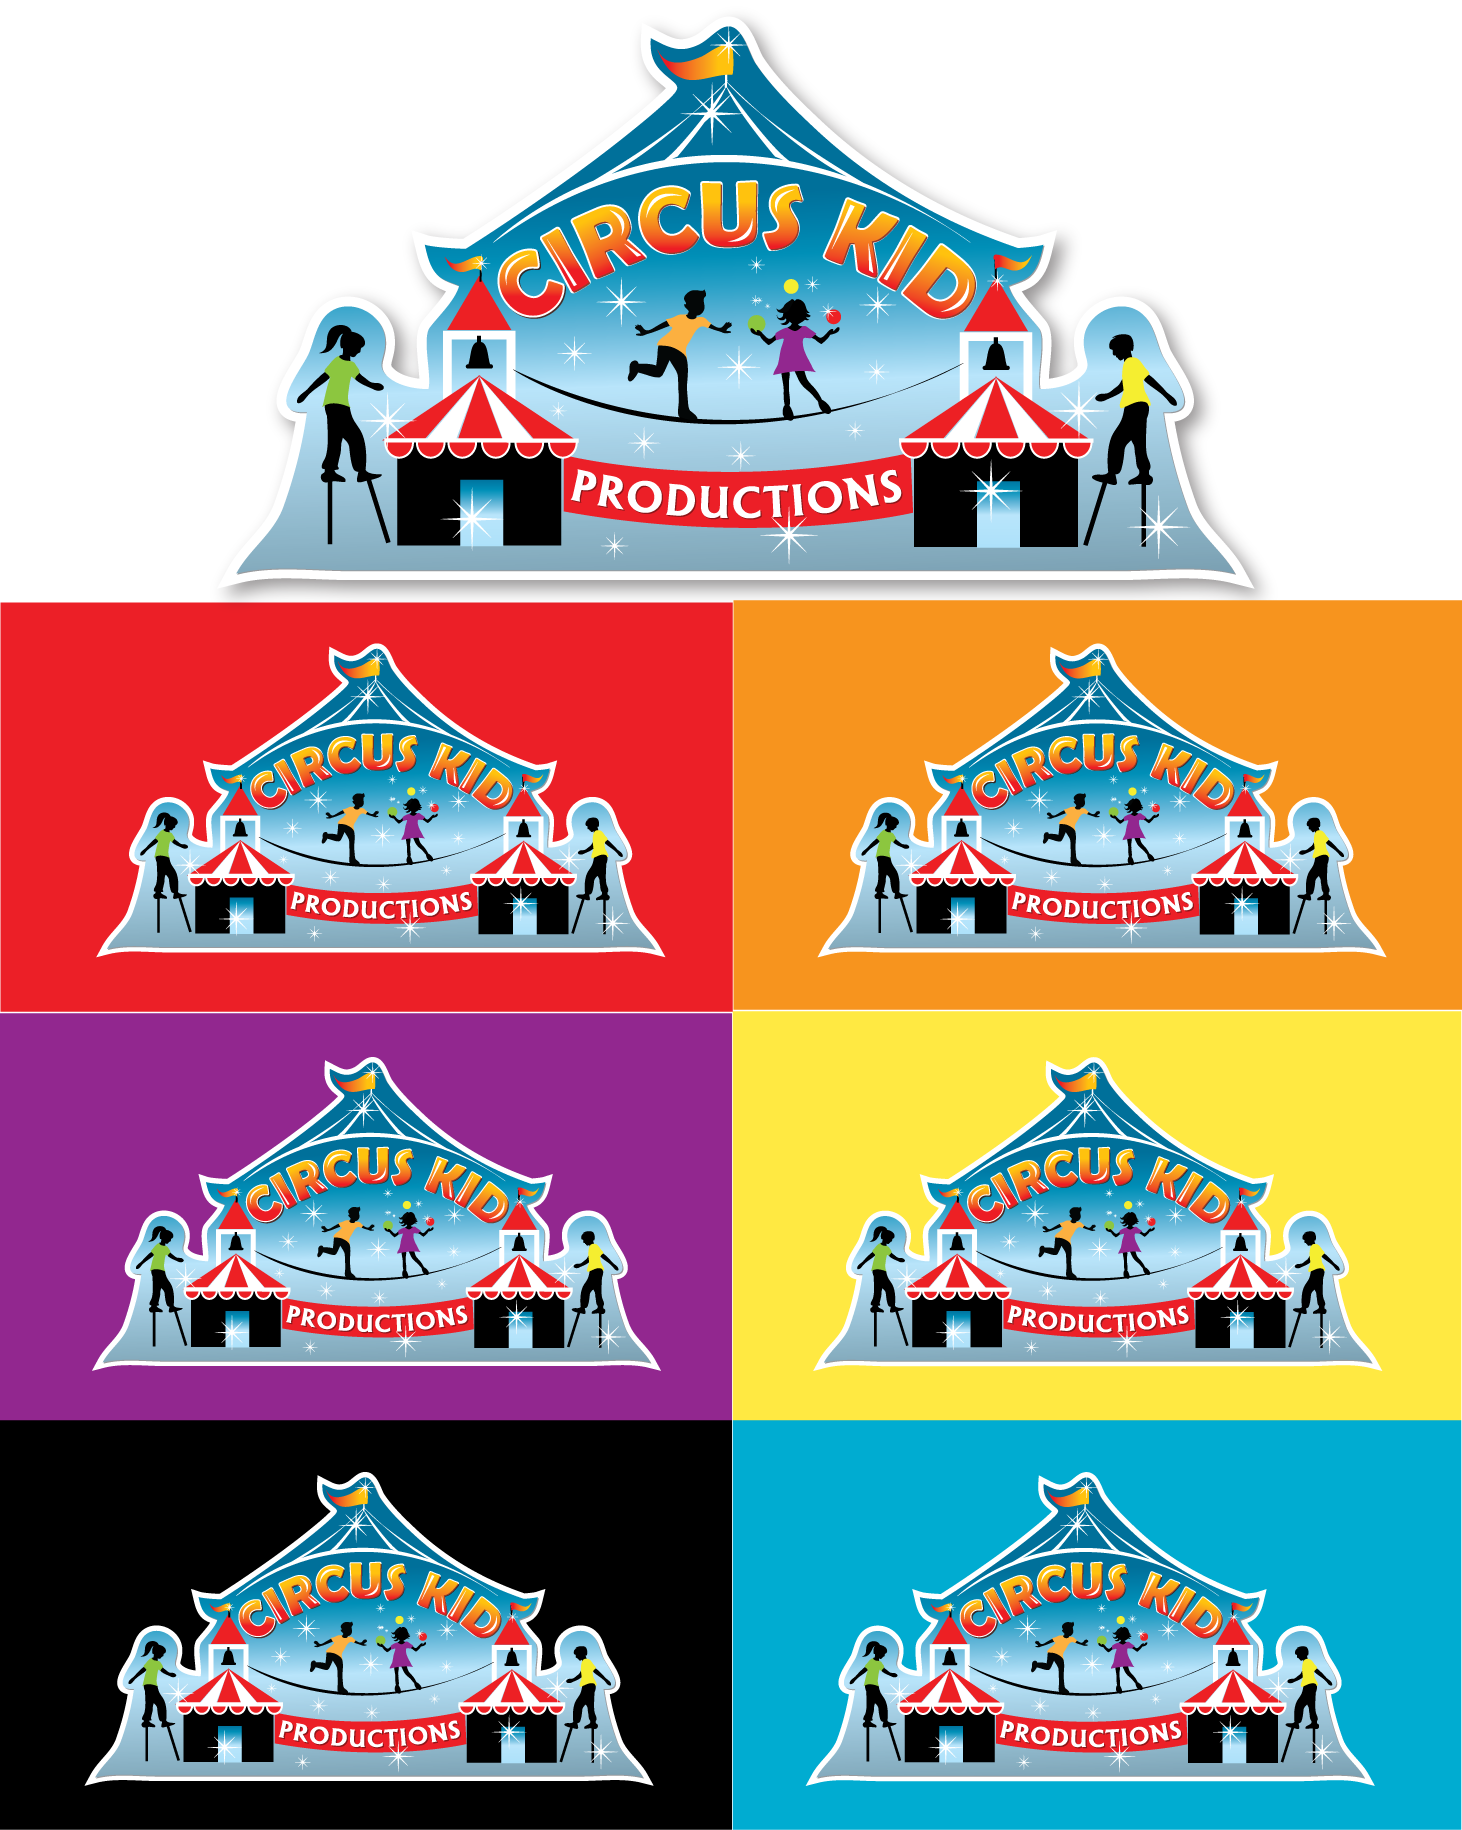 Create the next logo for Circus Kid Productions